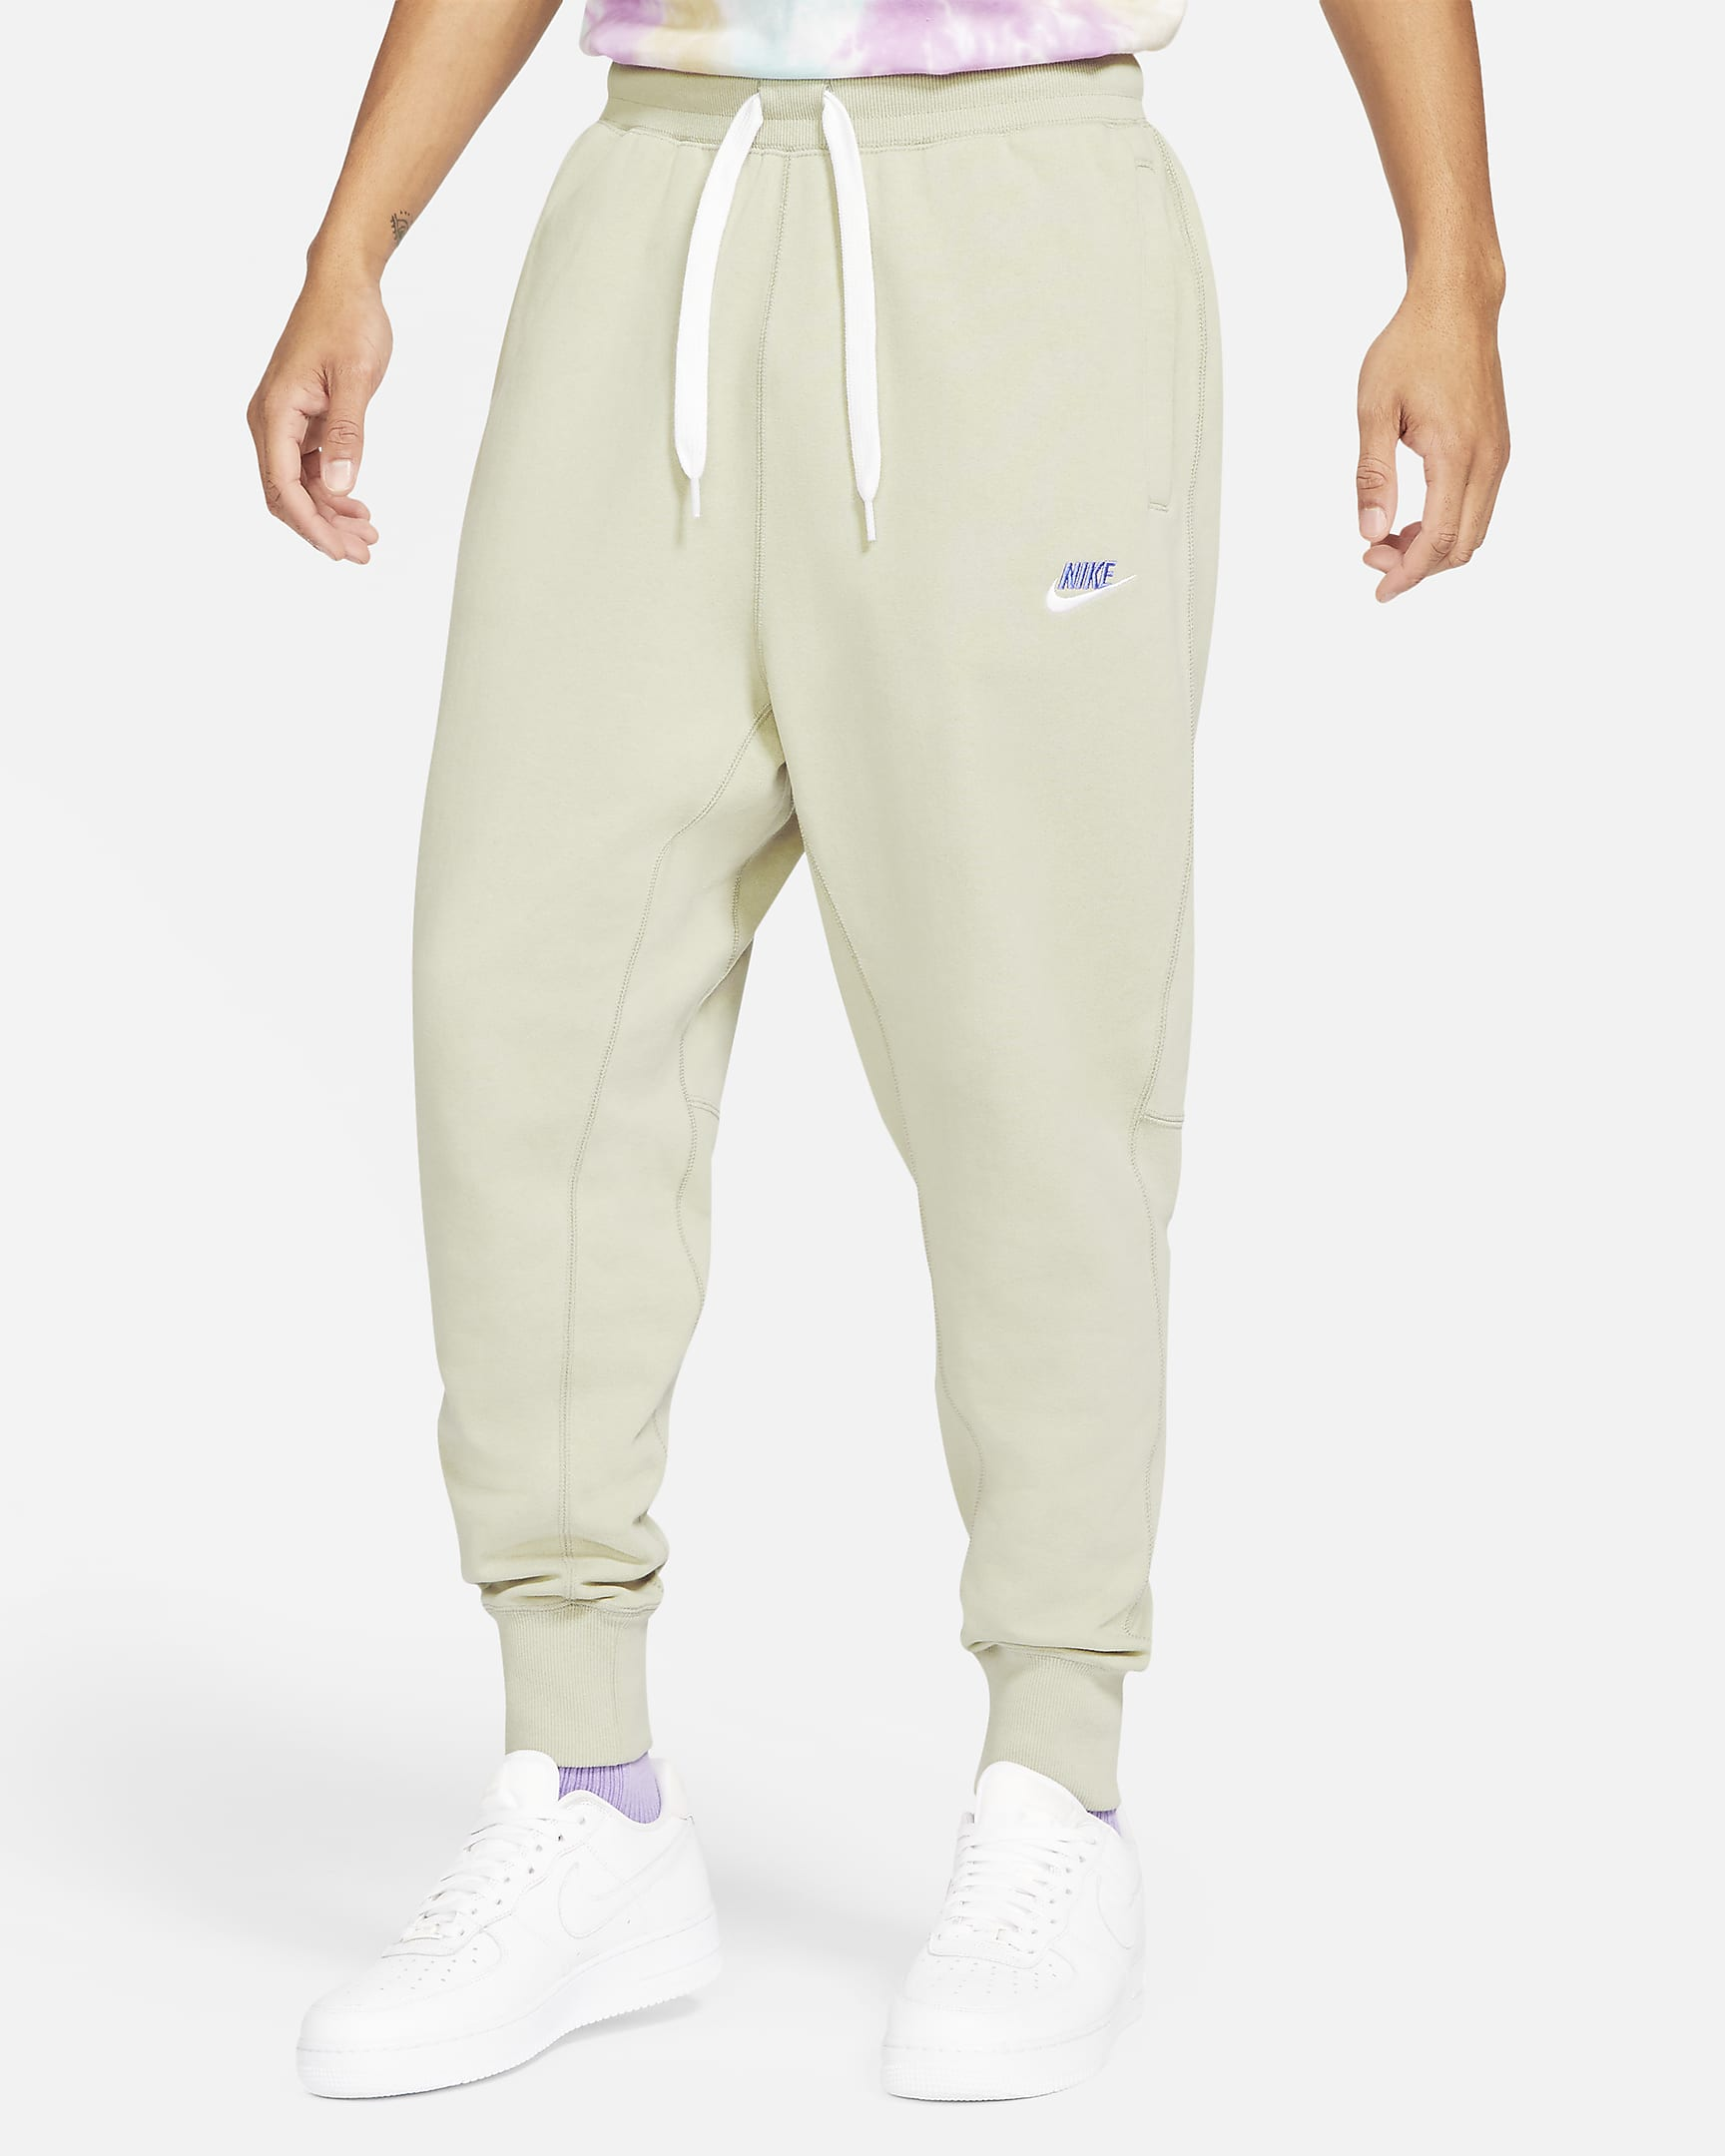 sportswear-mens-classic-fleece-pants-DgDCHh.png